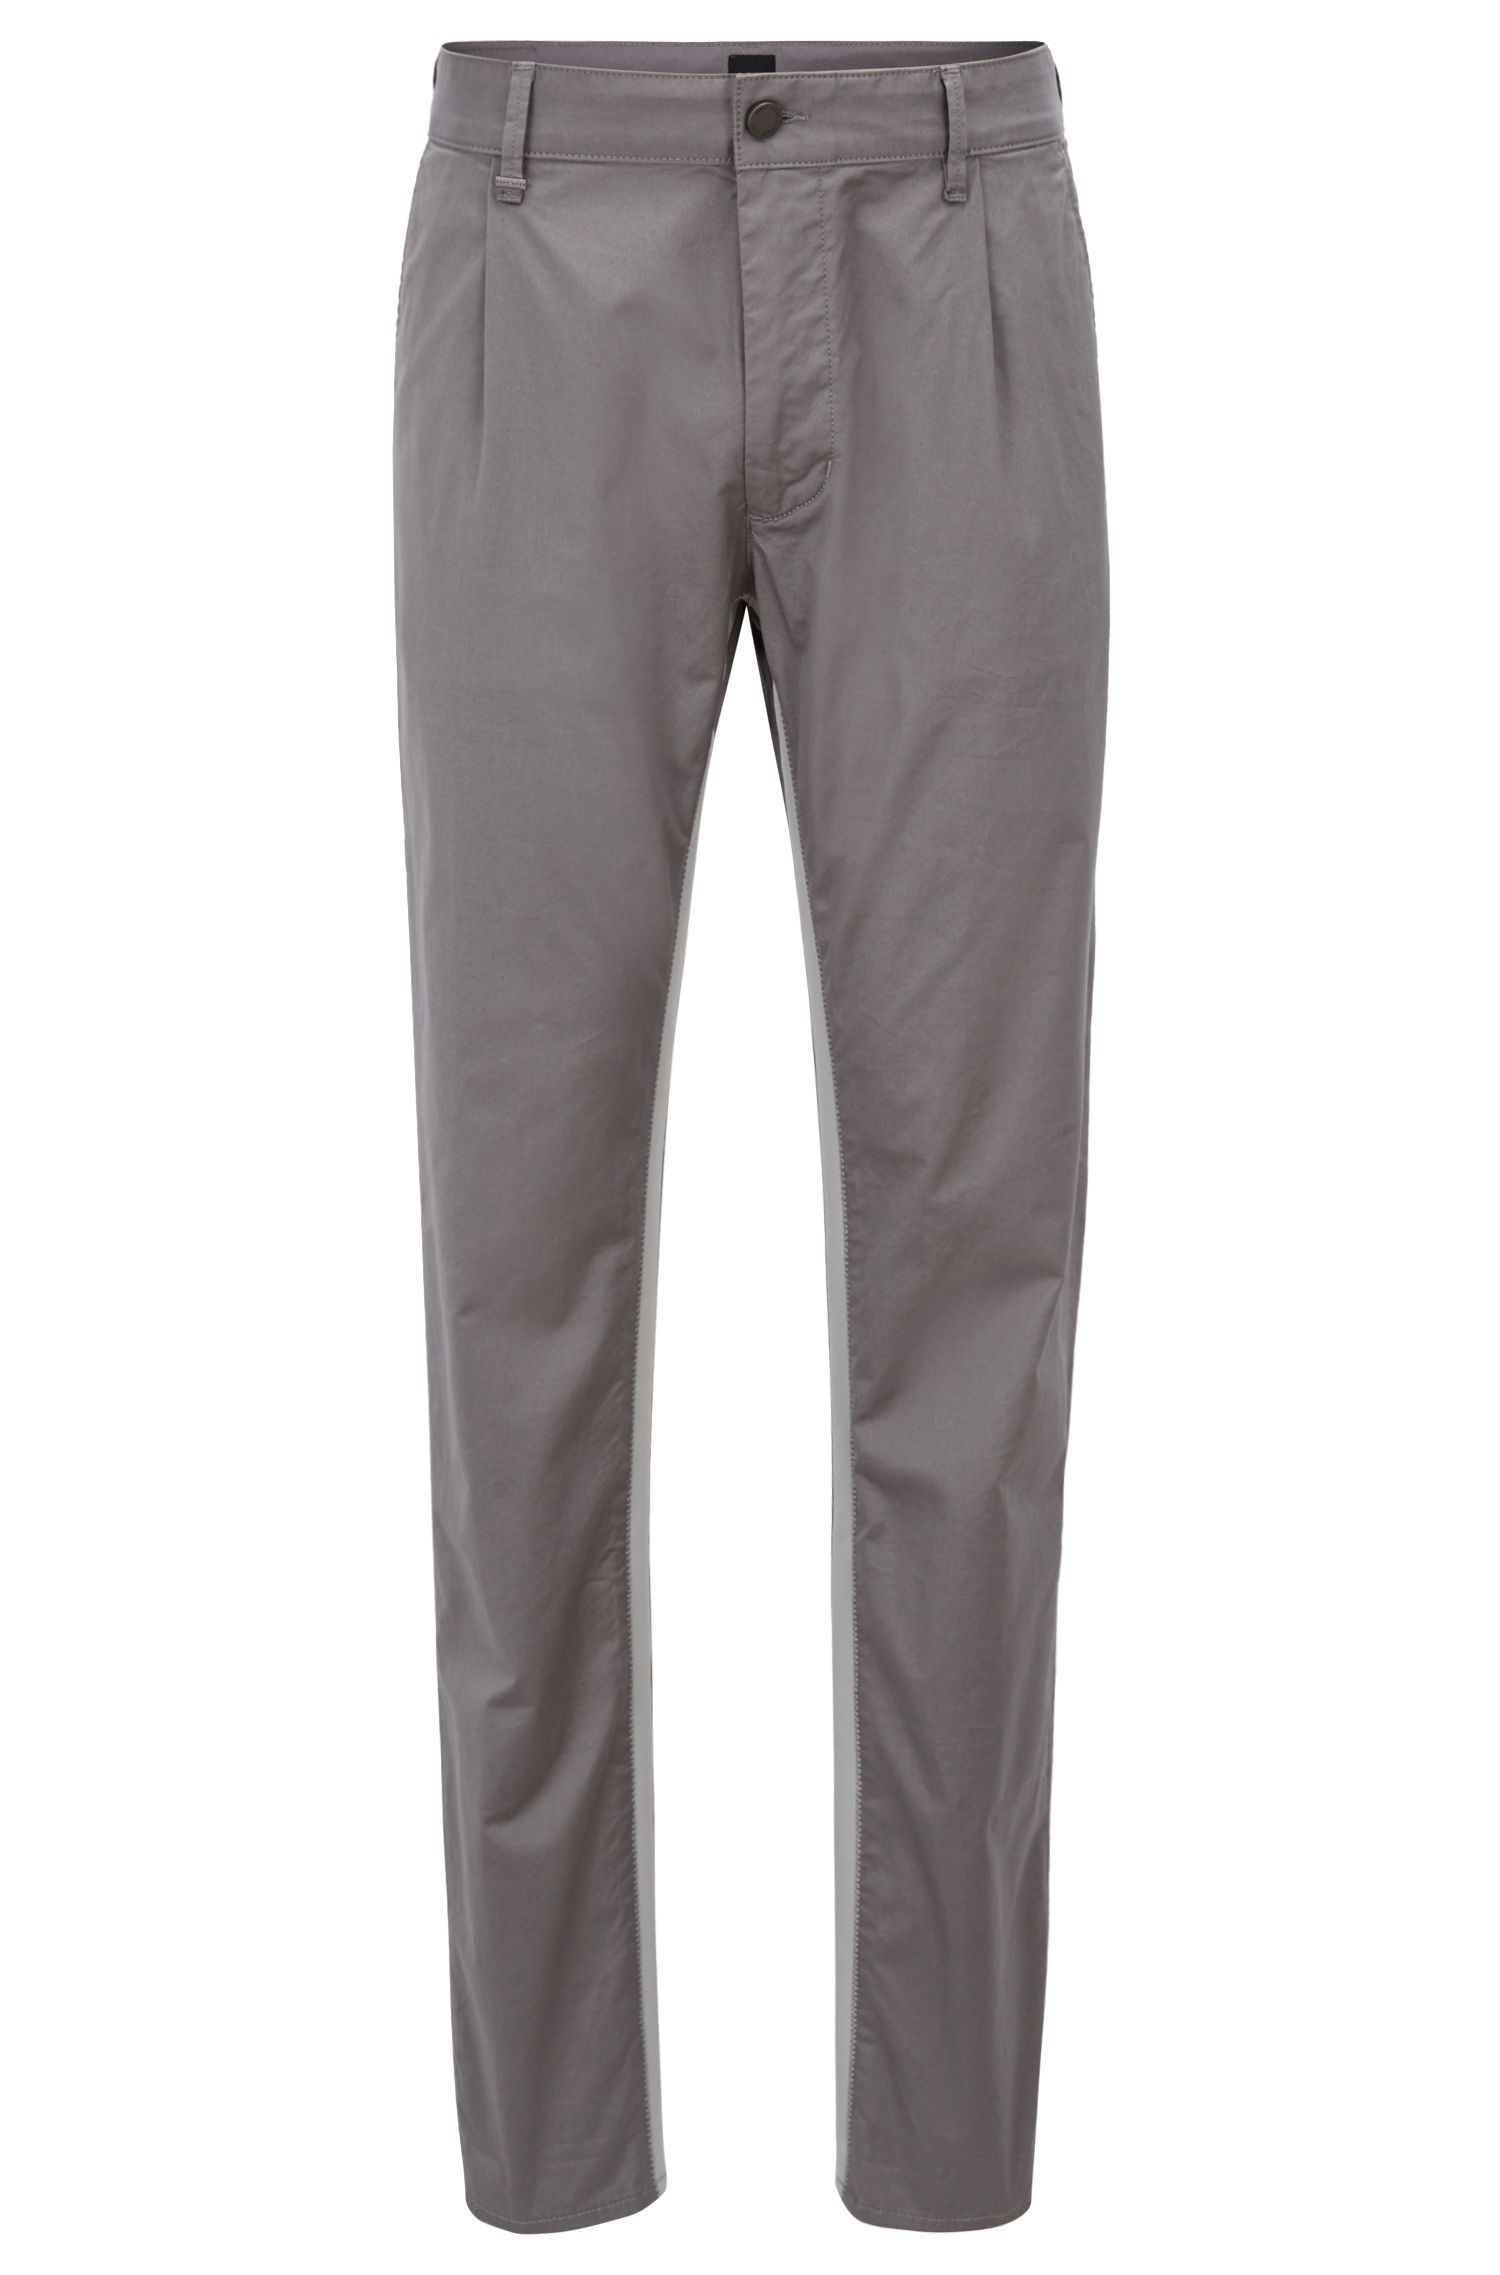 Relaxed-fit pants in stretch cotton with riptape detailing